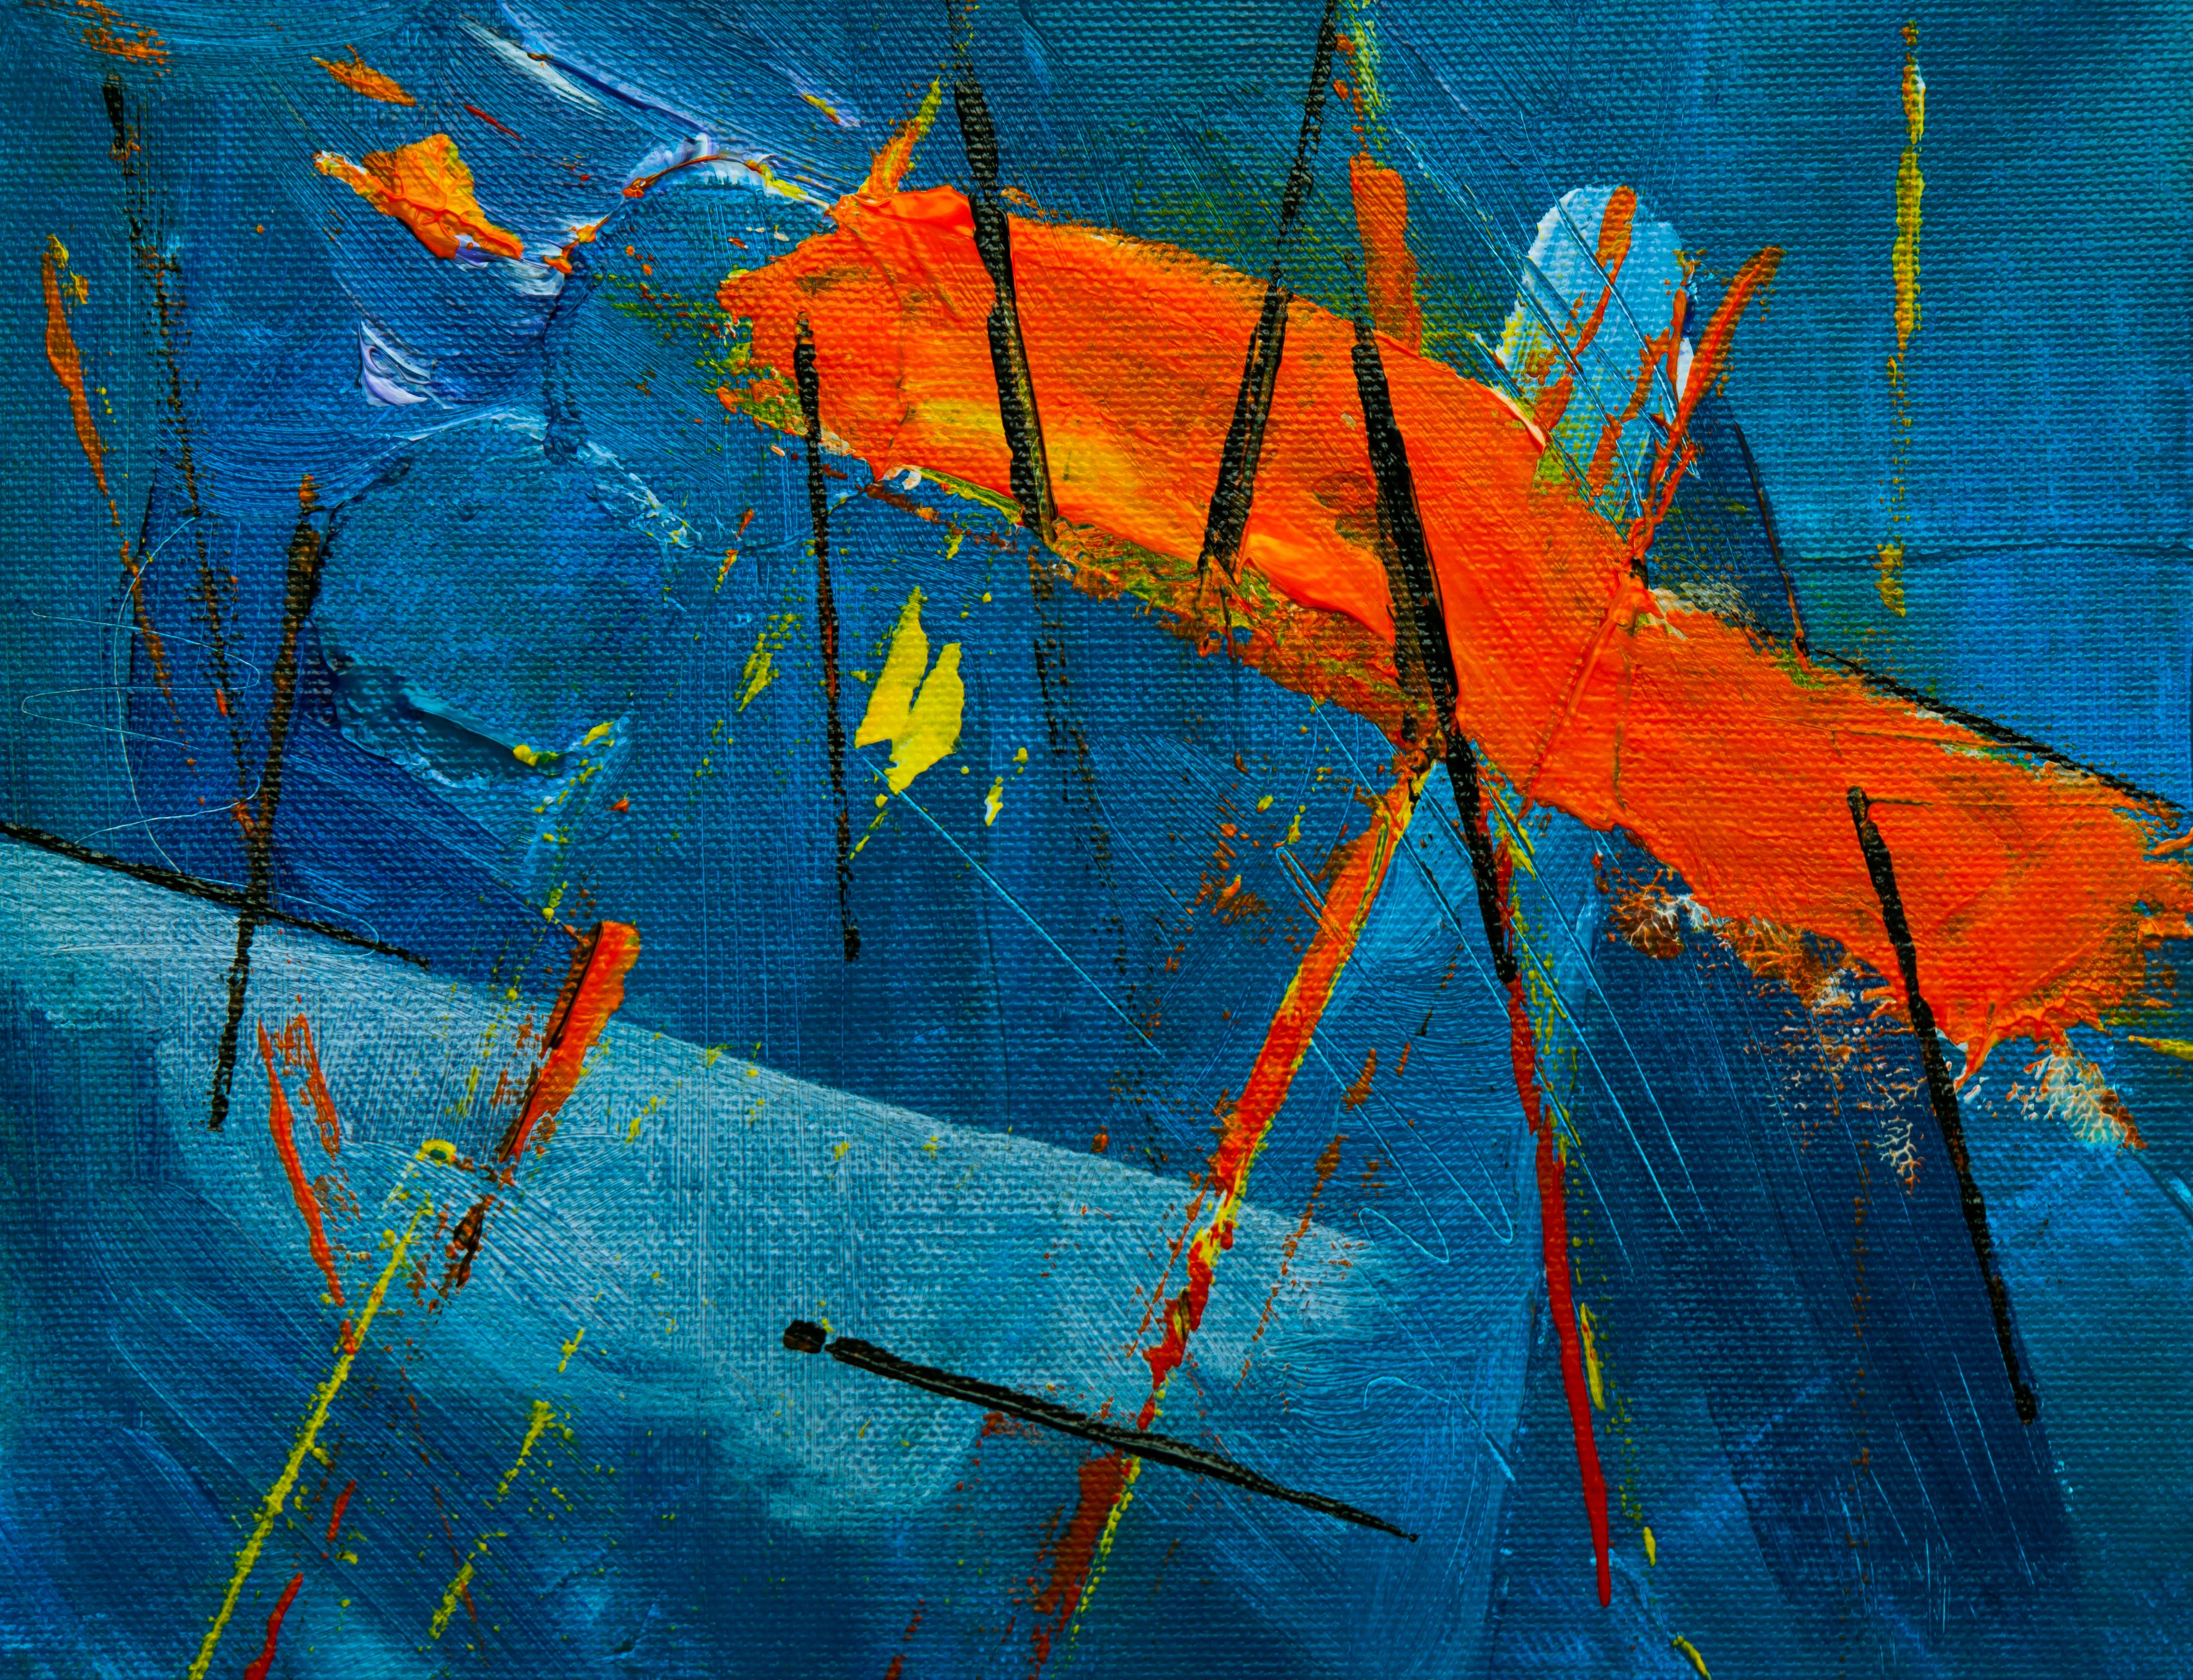 Blue, Orange, and Black Abstract Painting